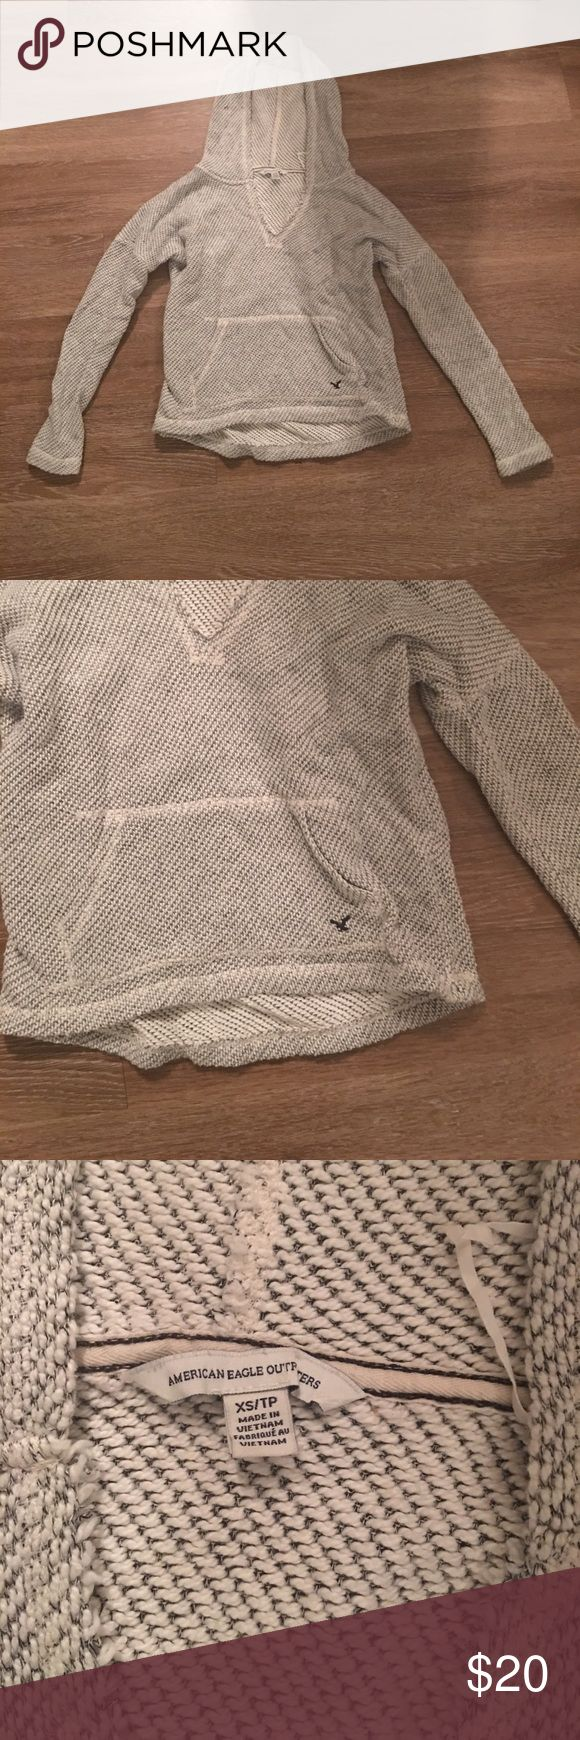 American Eagle Sweatshirt American Eagle sweatshirt size XS. In good condition American Eagle Outfitters Tops Sweatshirts & Hoodies